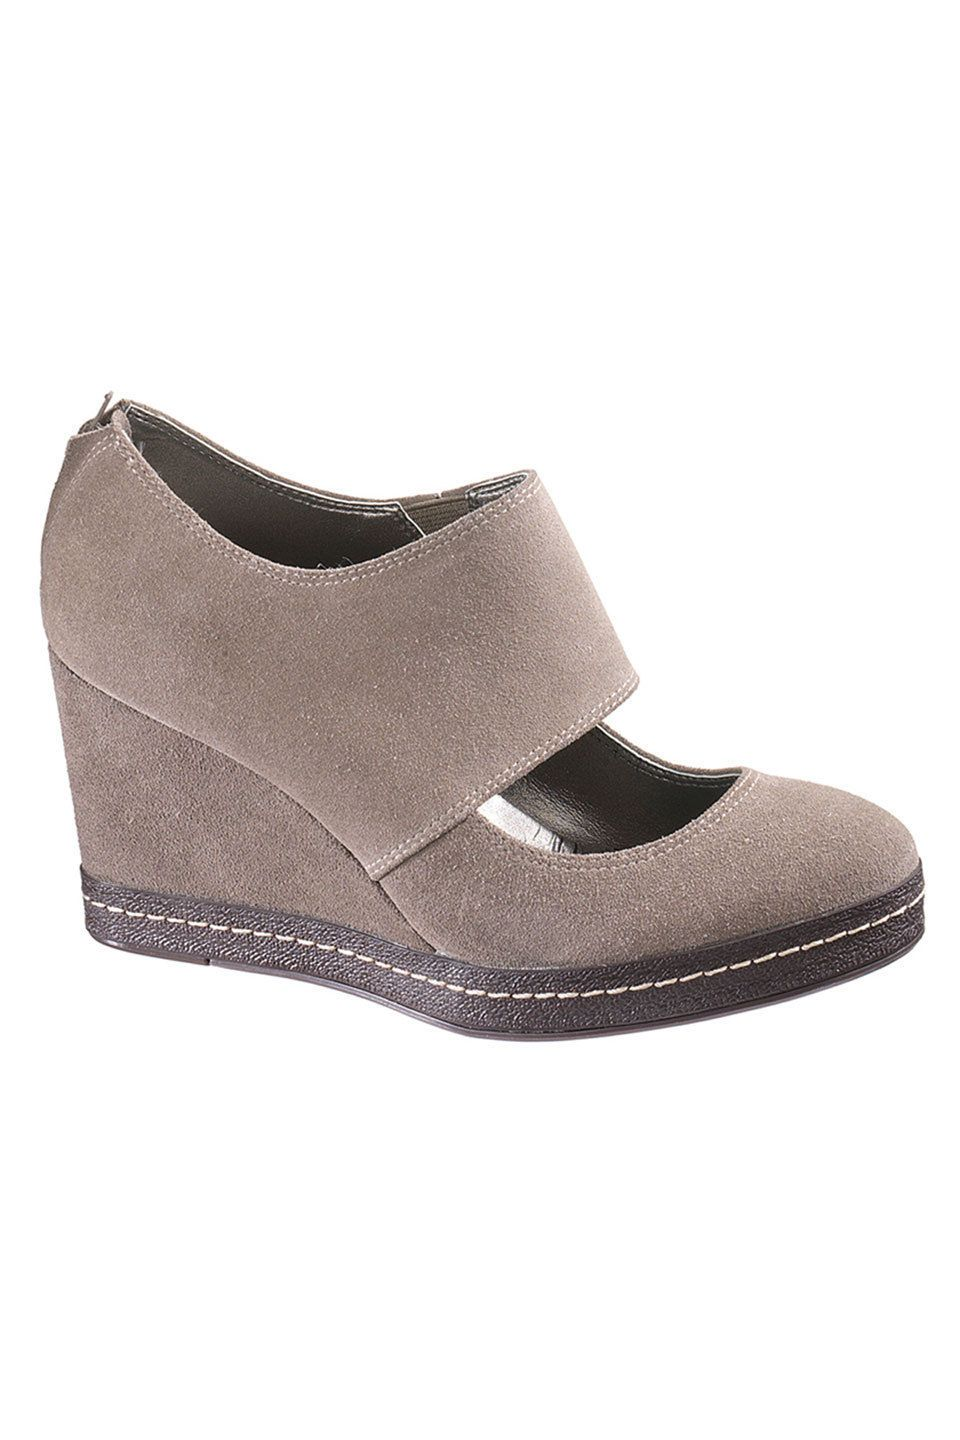 Hush Puppies Beka Shoes In Taupe Suede - Beyond the Rack $69.99